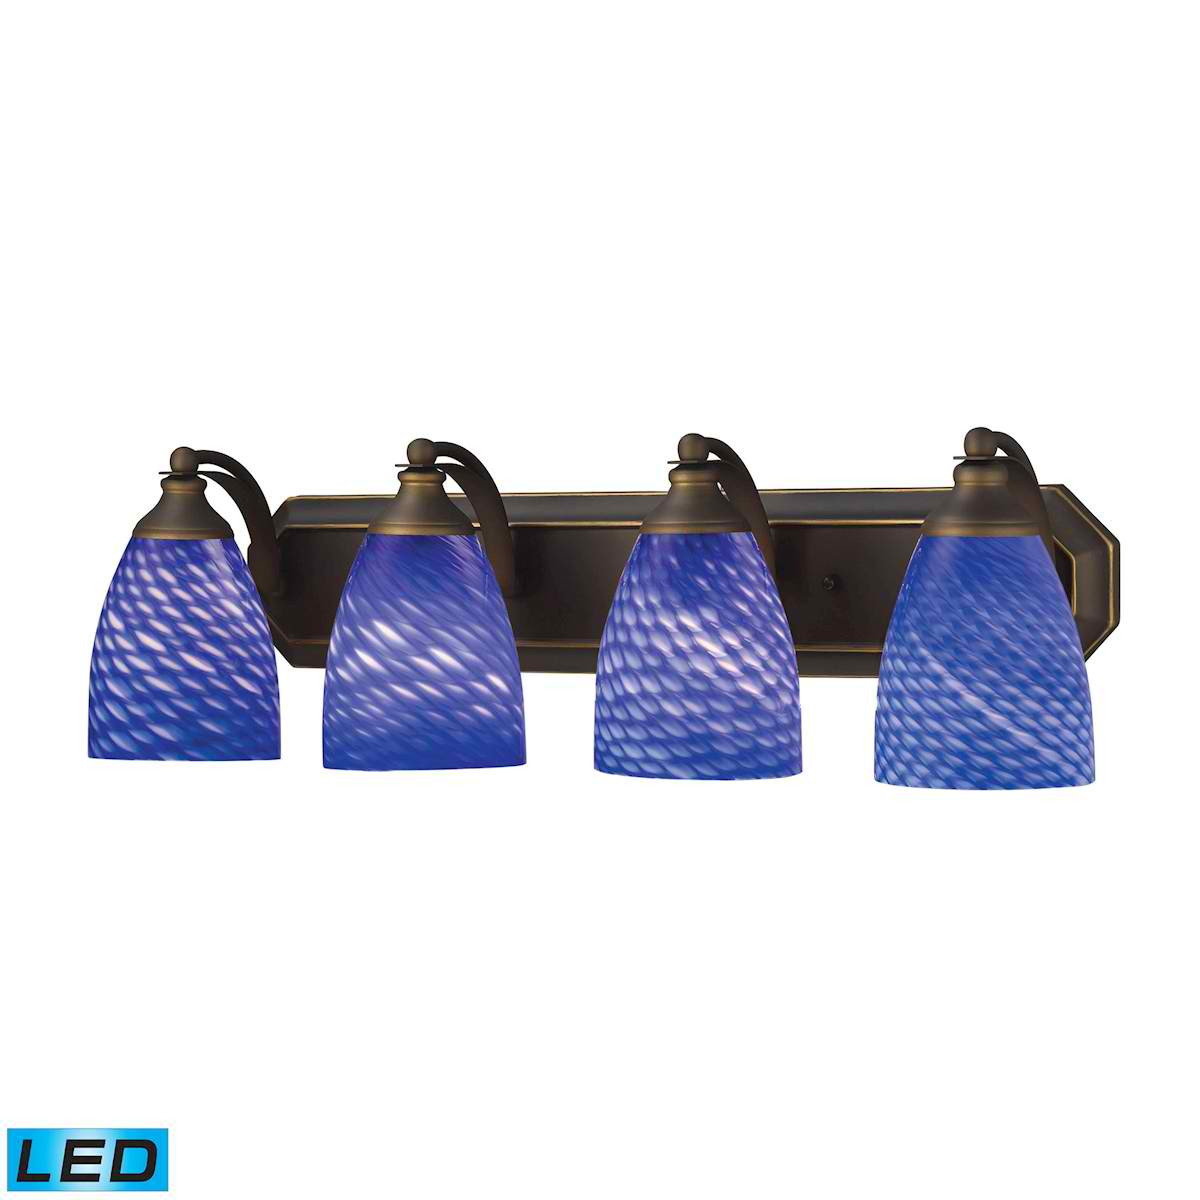 4 Light Vanity in Aged Bronze and Sapphire Glass - LED, 800 Lumens (3200 Lumens Total) with Full Scale